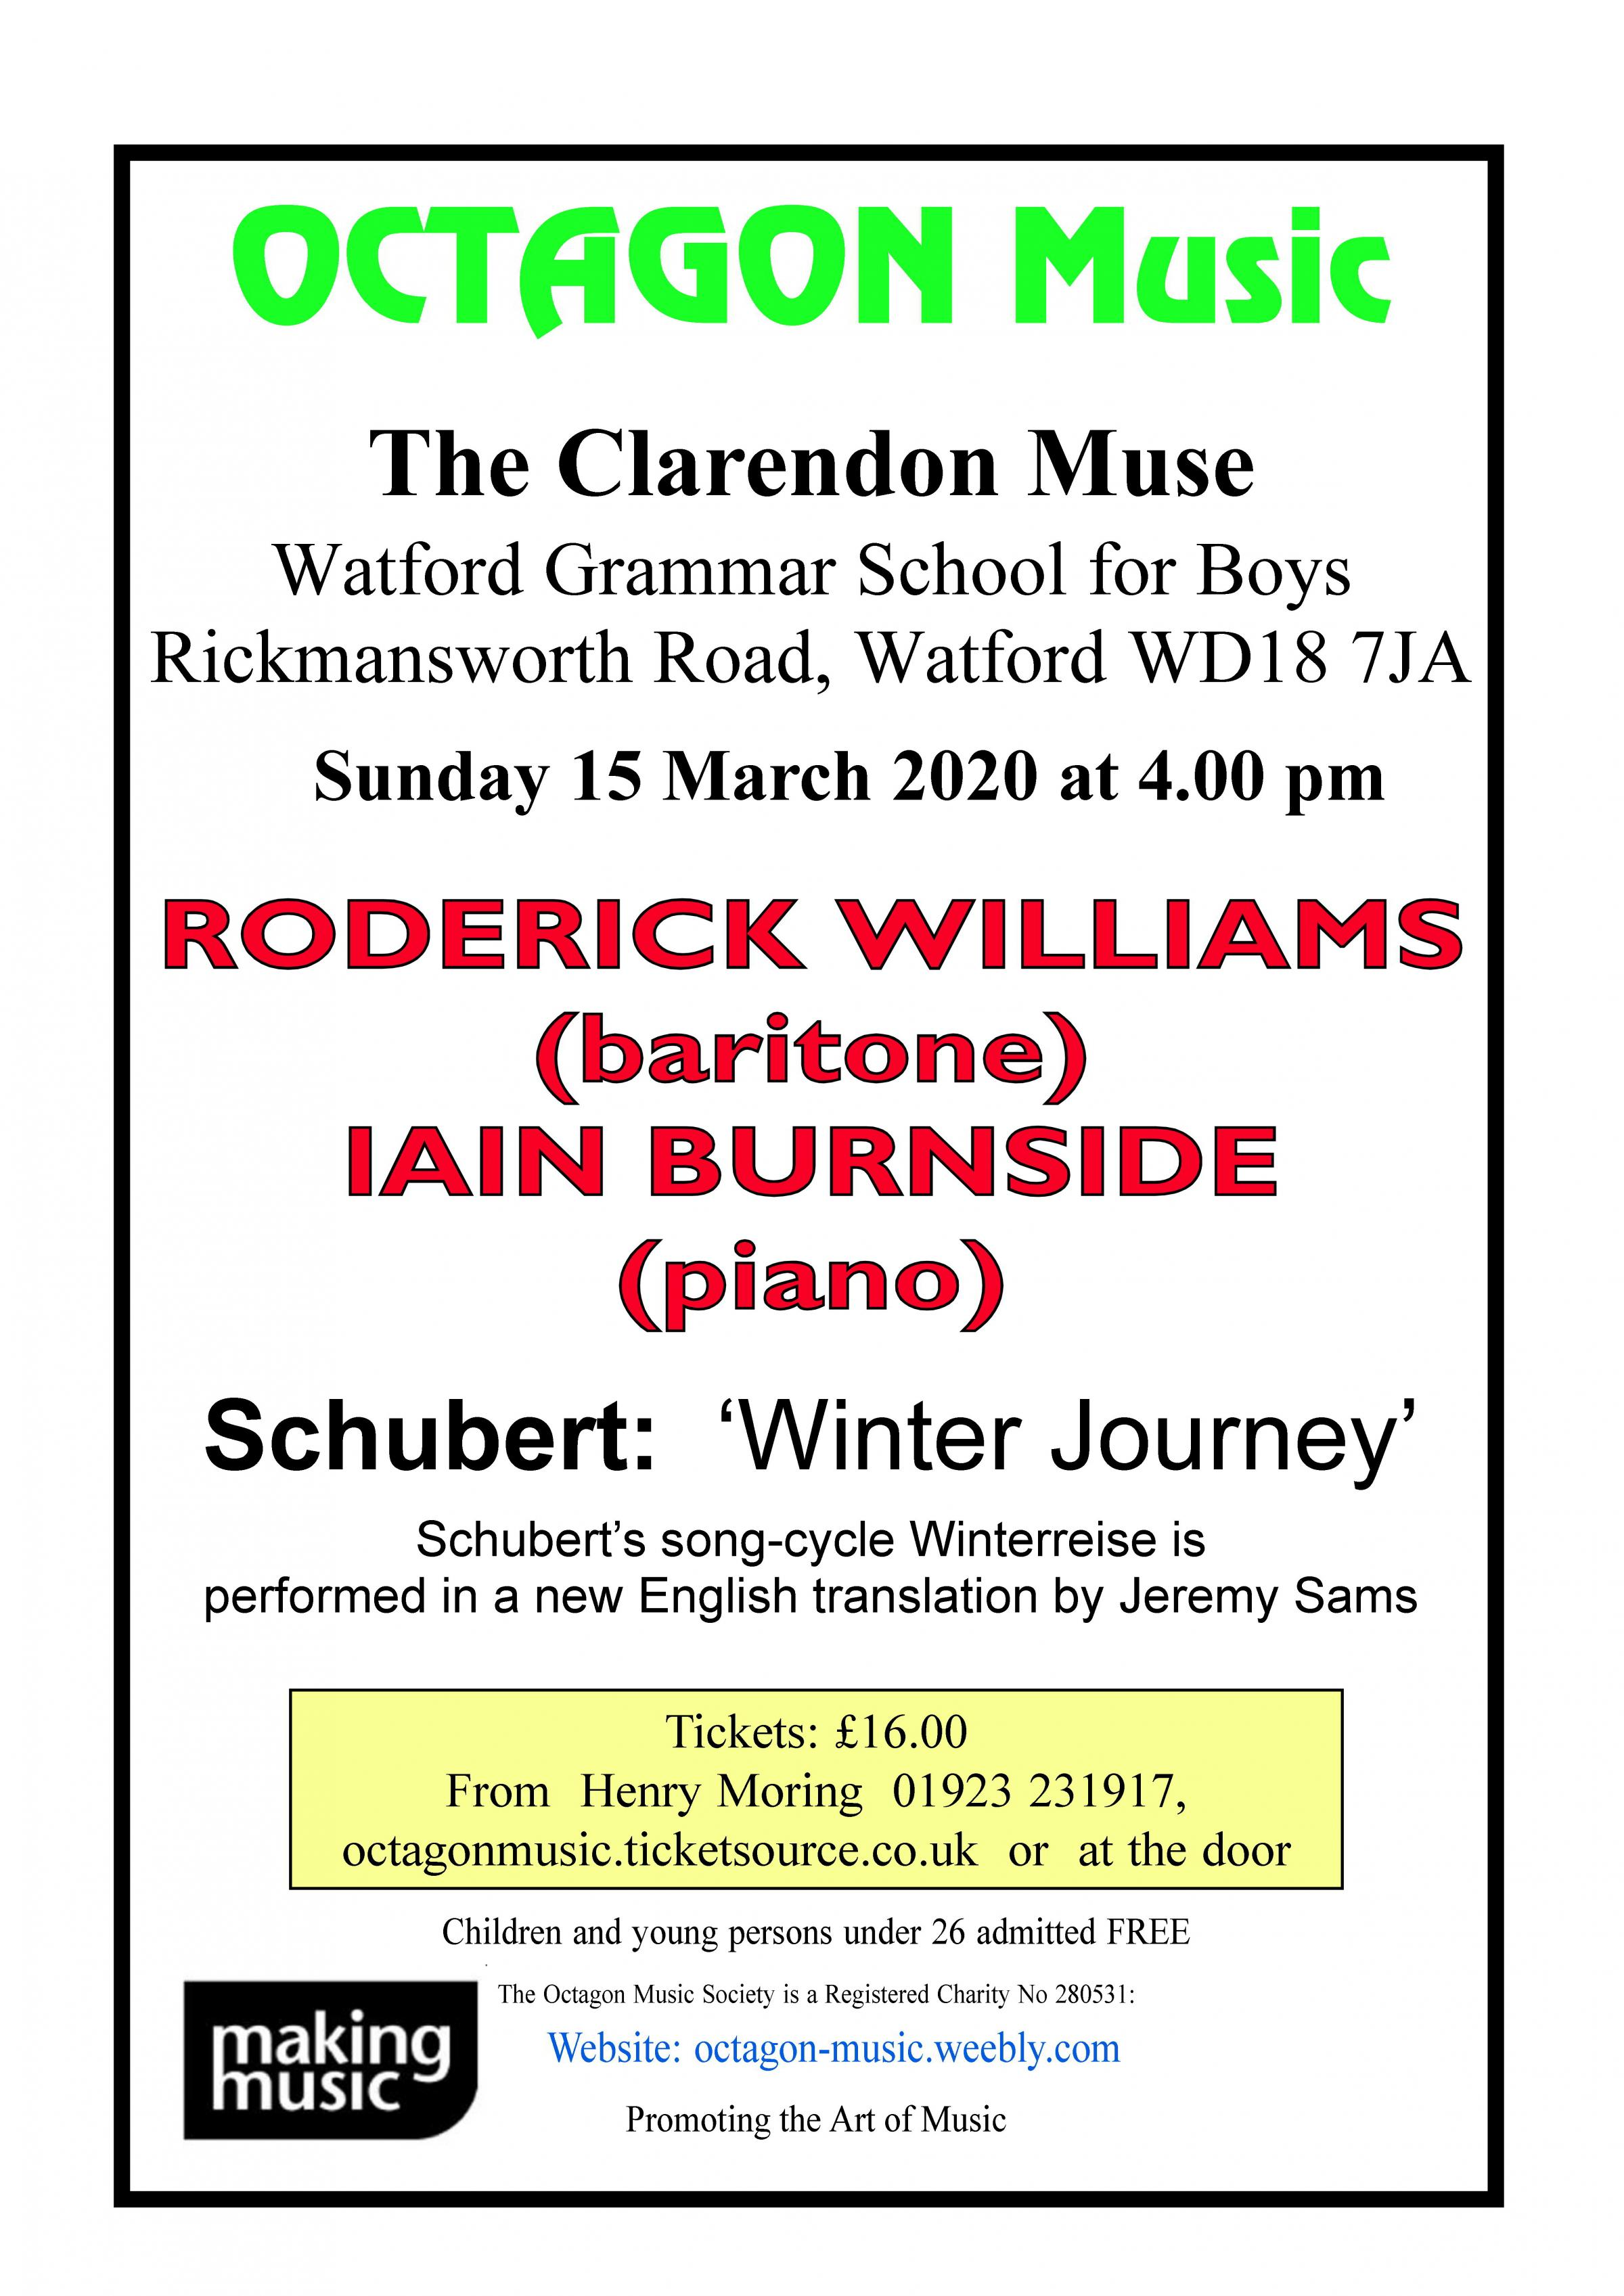 Octagon Music Society - Roderick Williams (baritone) and Iain Burnside (piano)